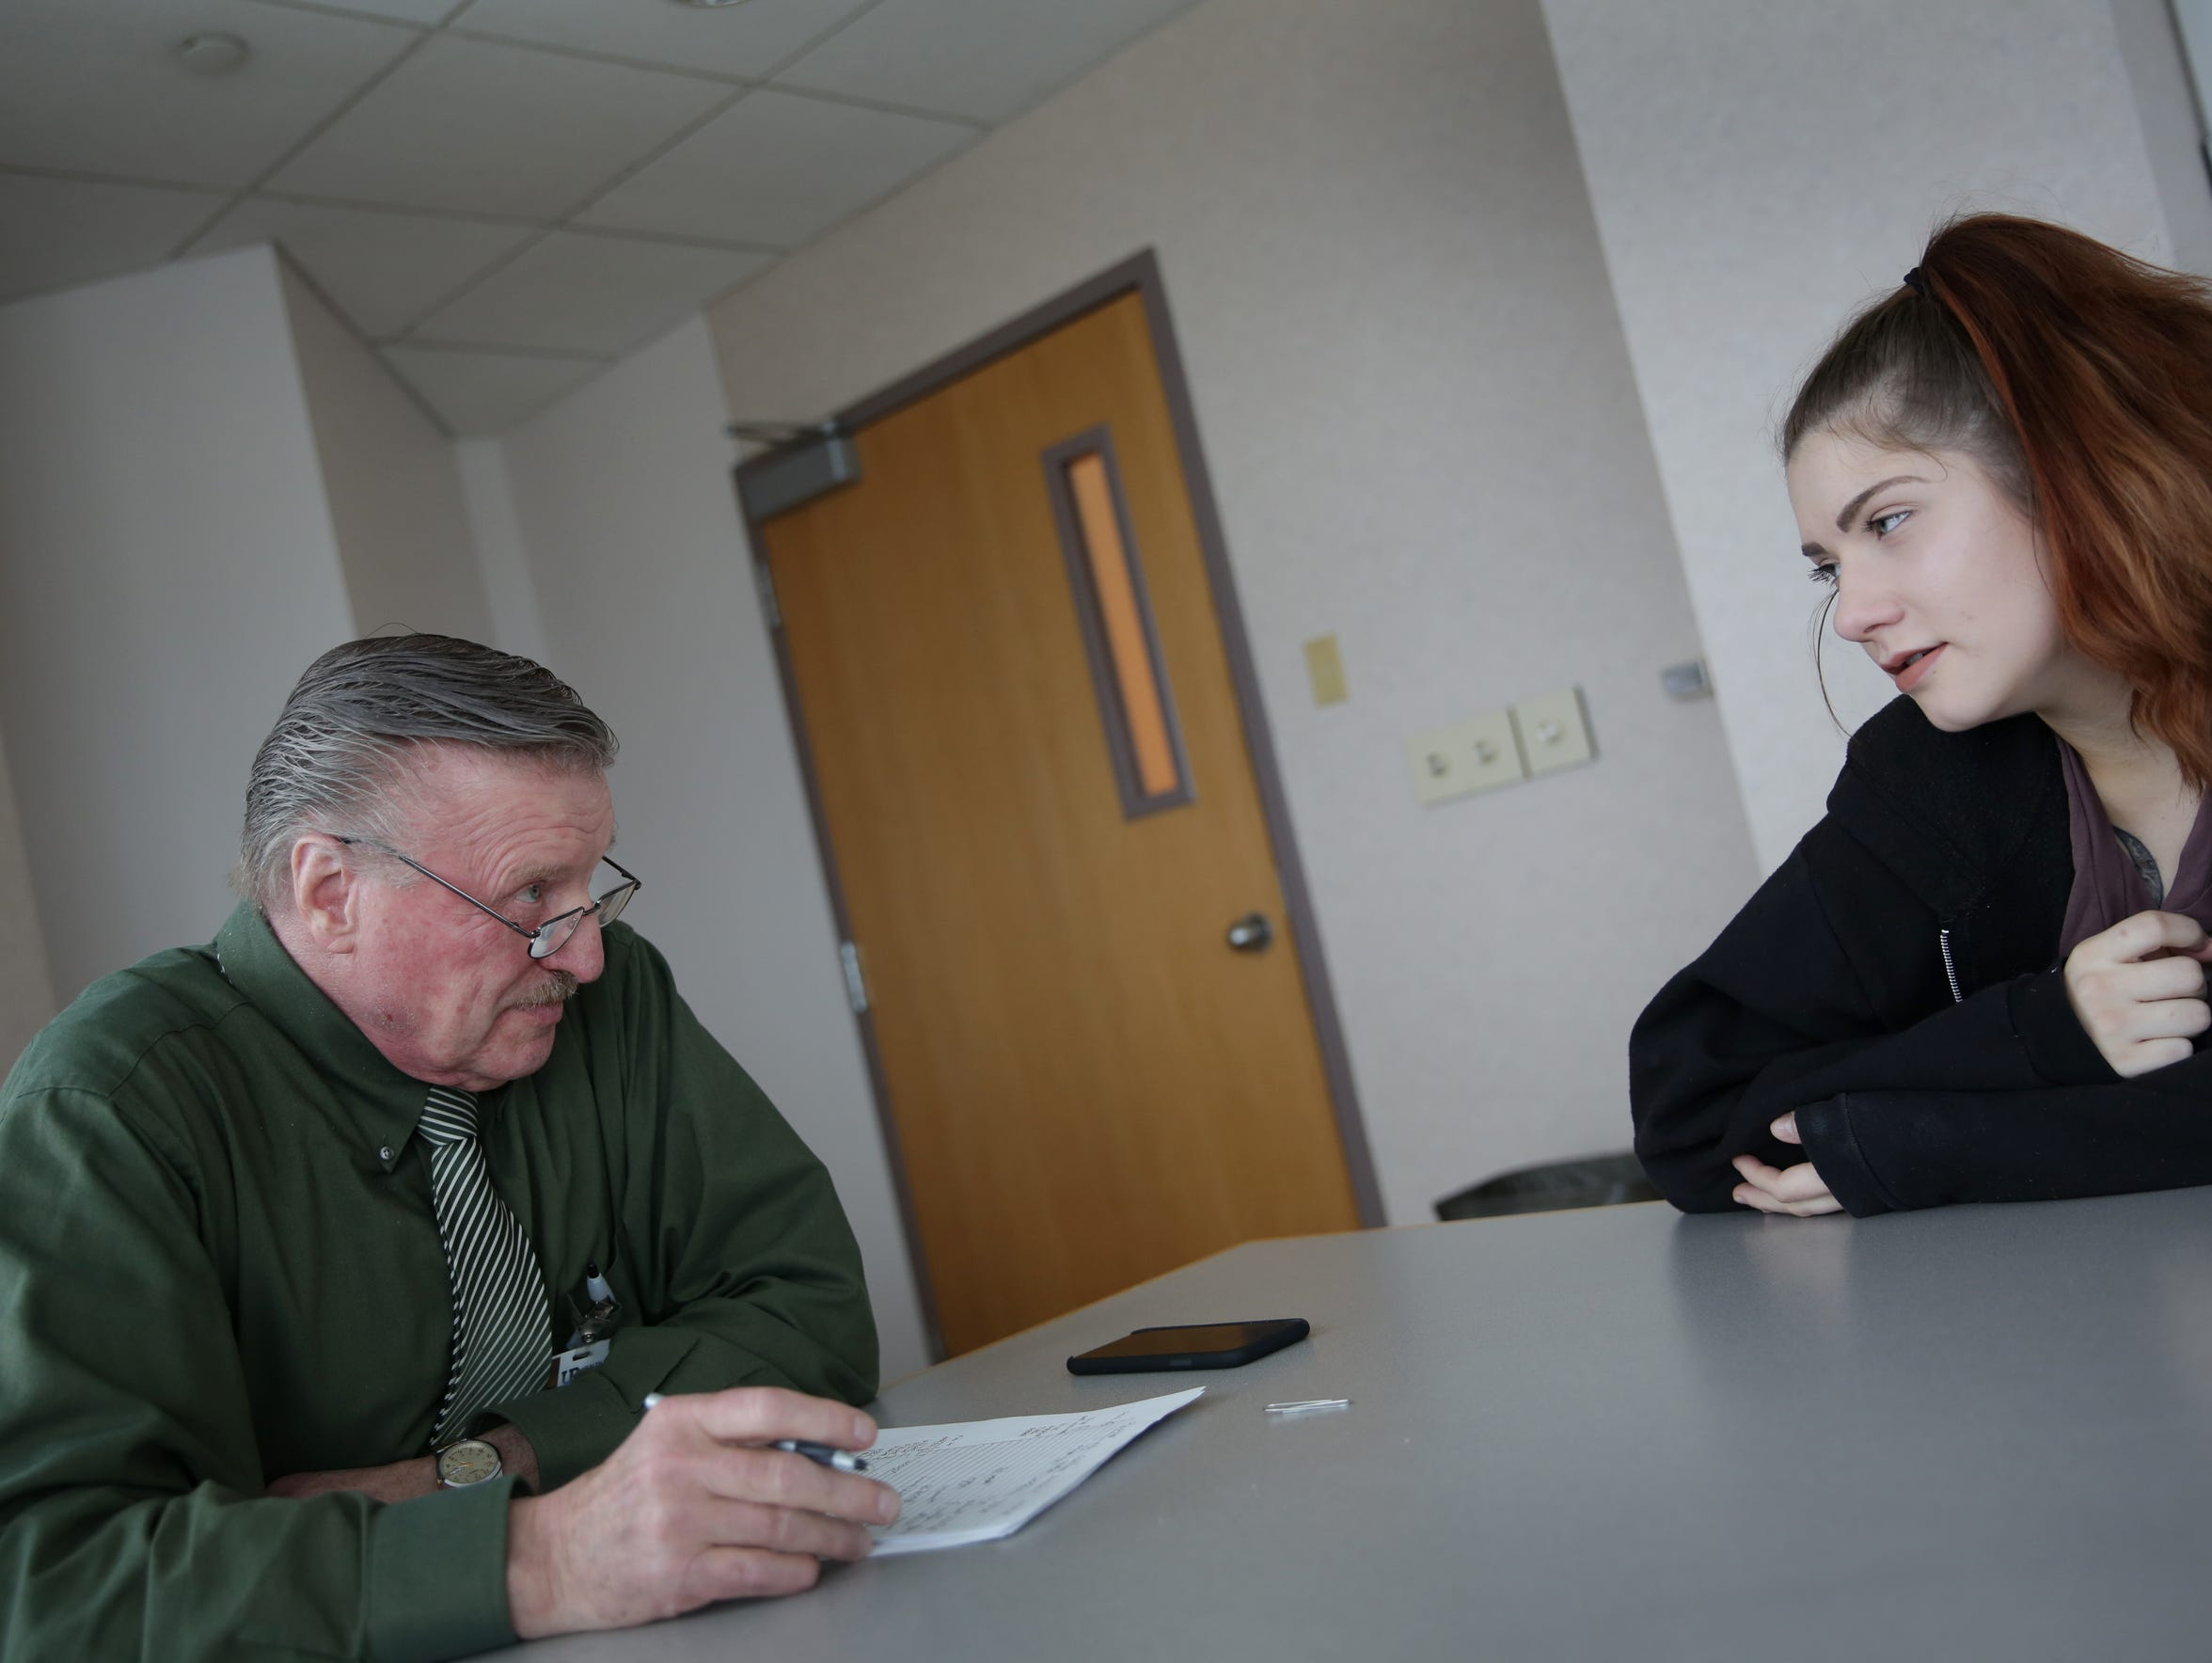 Chelsea Reichel meets with addiction medicine Dr. John Lehtinen at UP Health System in Marquette, Mich. on March 9, 2018.